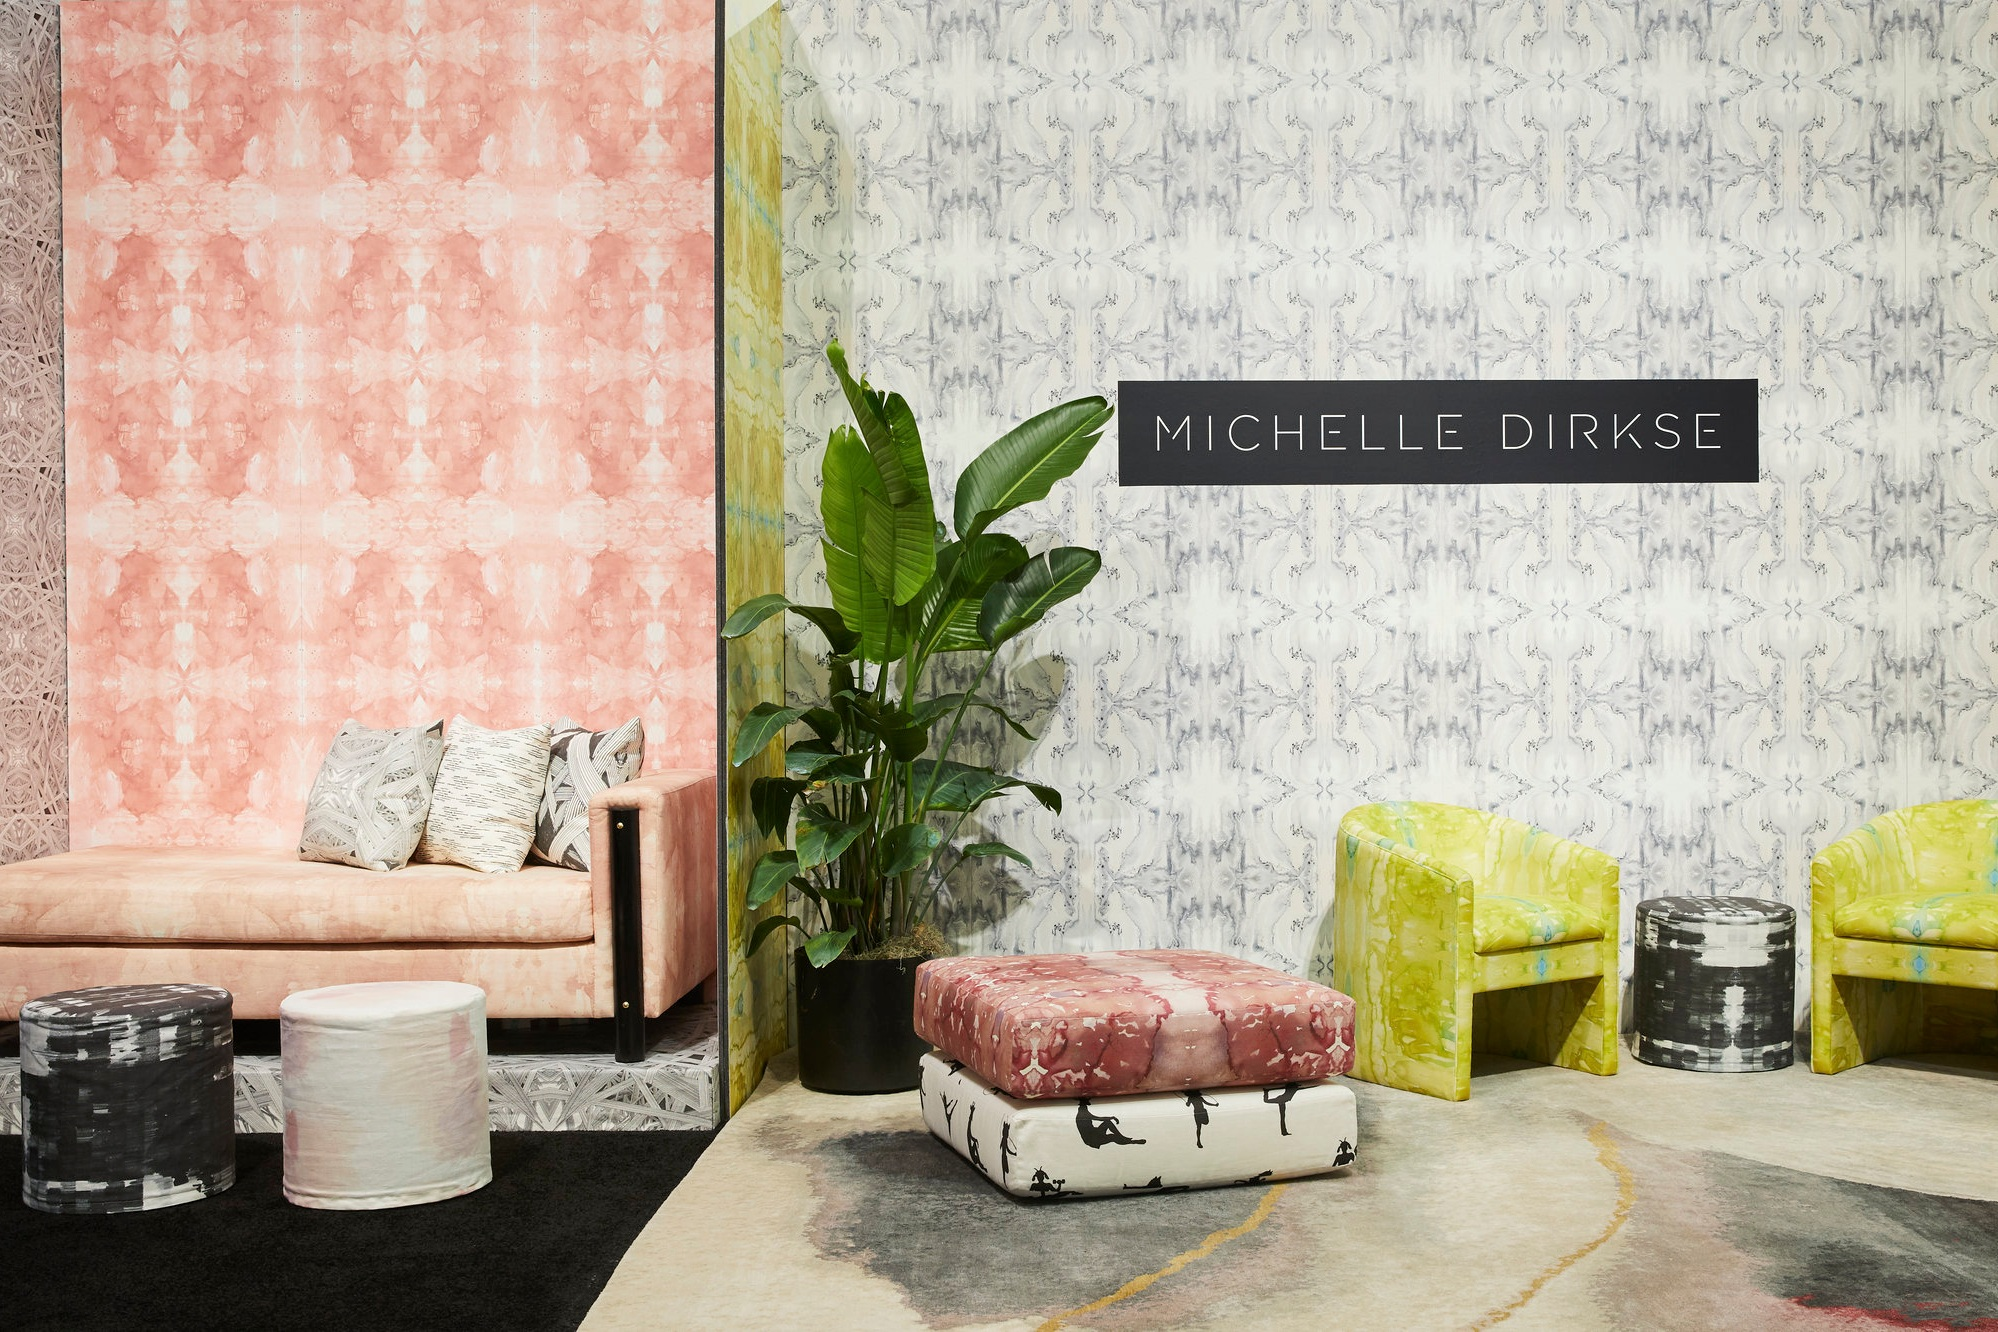 - Wallpaper, Fabric and Rug Collection by Michelle Dirkse